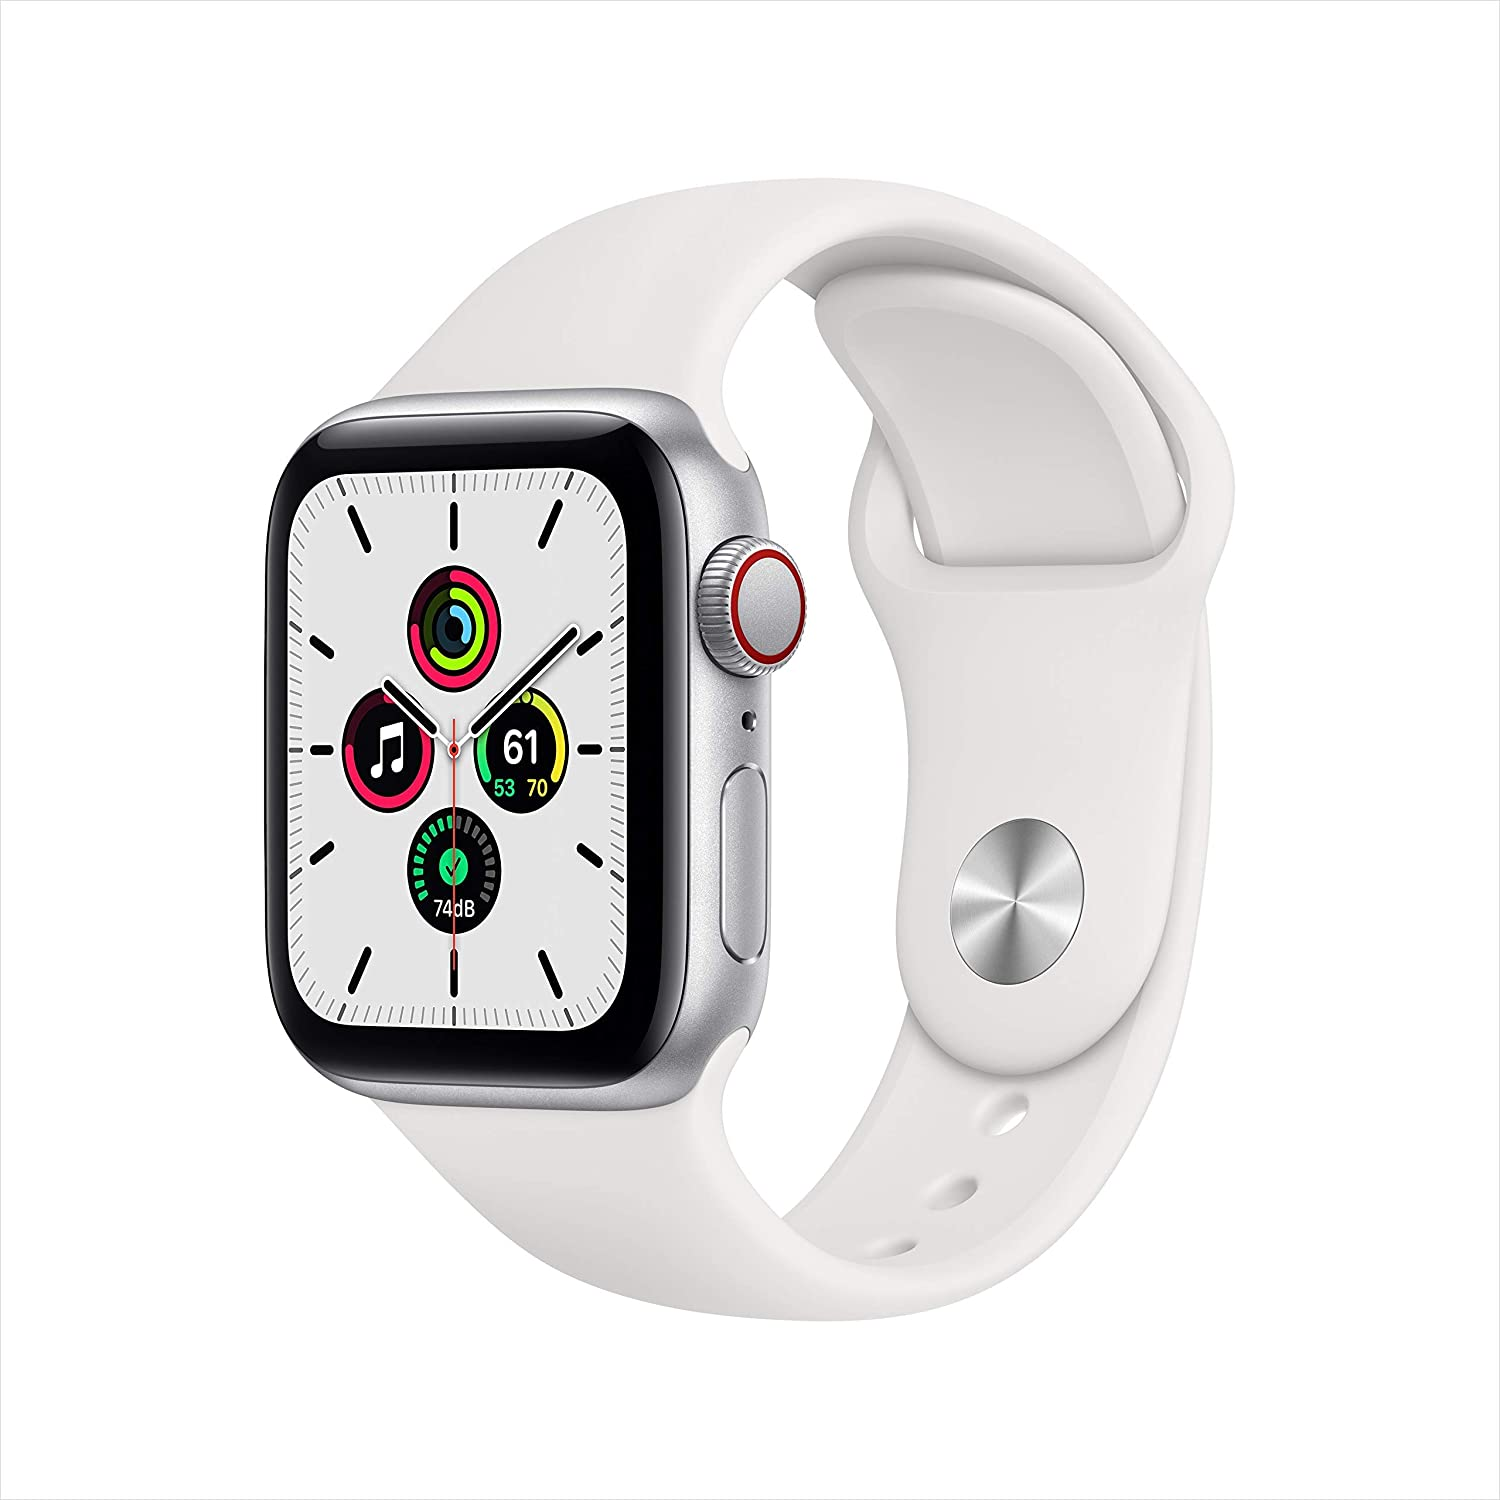 Apple Watch SE (GPS + Cellular, 40mm) - Silver Aluminum Case with White Sport Band (Renewed)